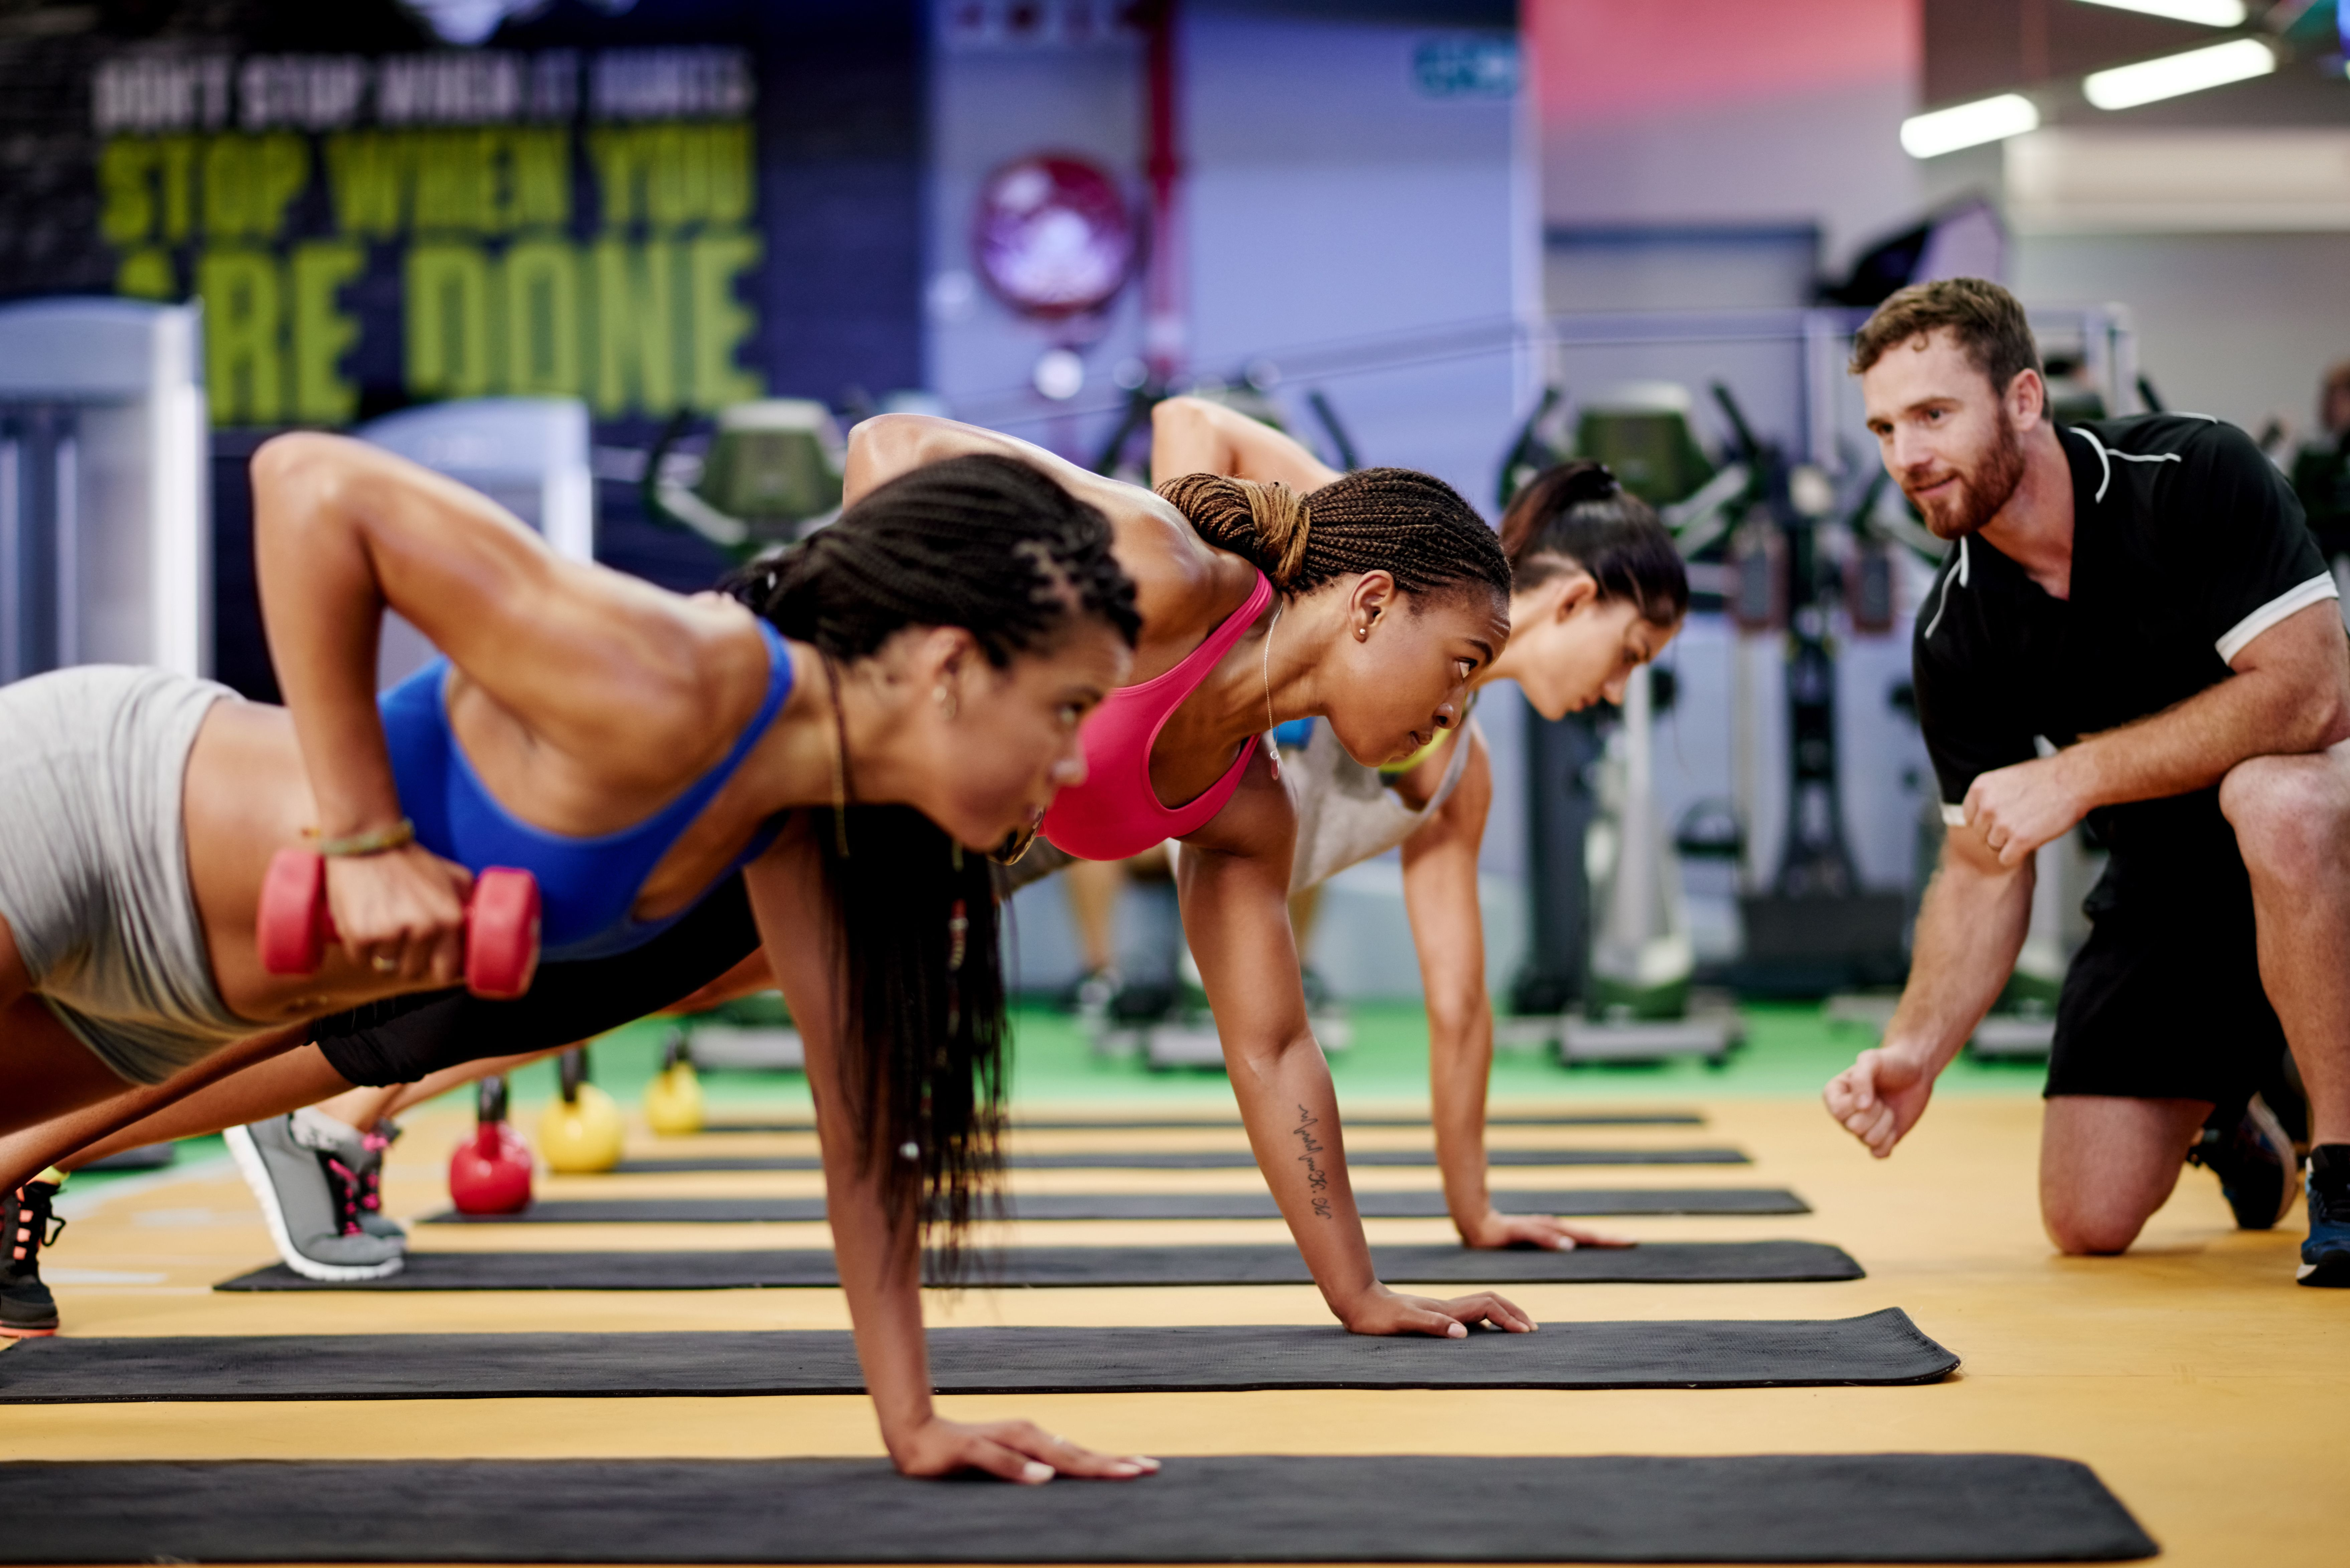 Hipe Is A One Hour Full Body Workout Designed To Maximize Results Workout Are Led By A Nationally Certified C Strength Training Fitness Body Full Body Workout